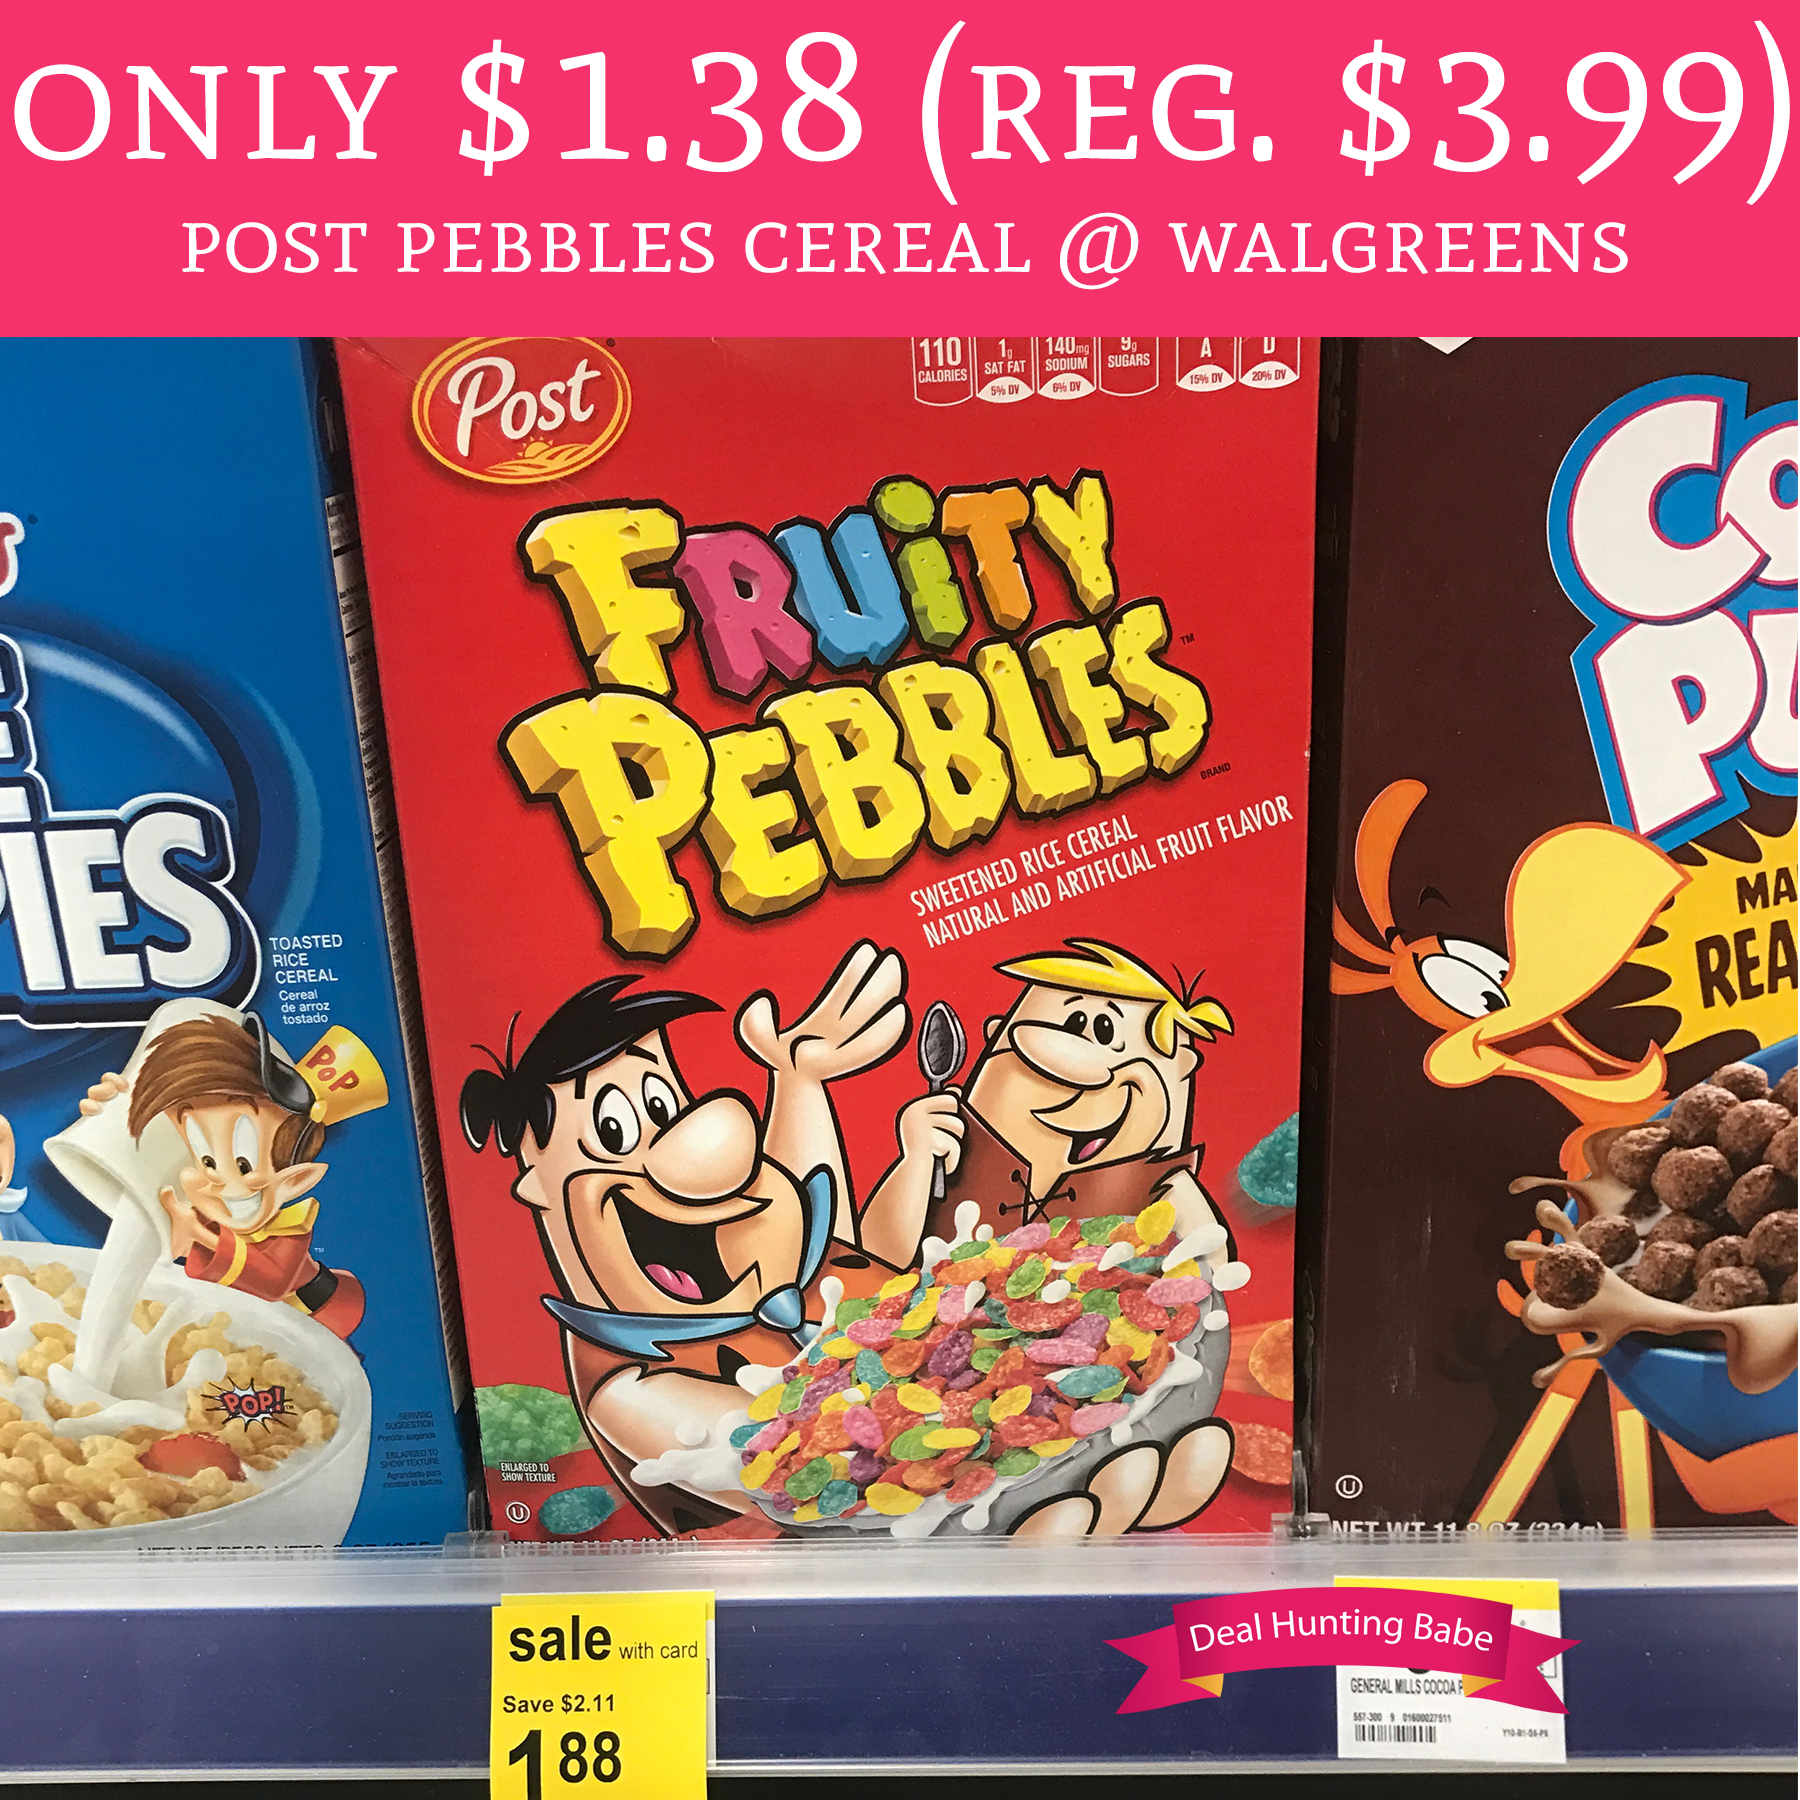 Only $1.38 (Regular $3.99) Post Pebbles Cereal @ Walgreens